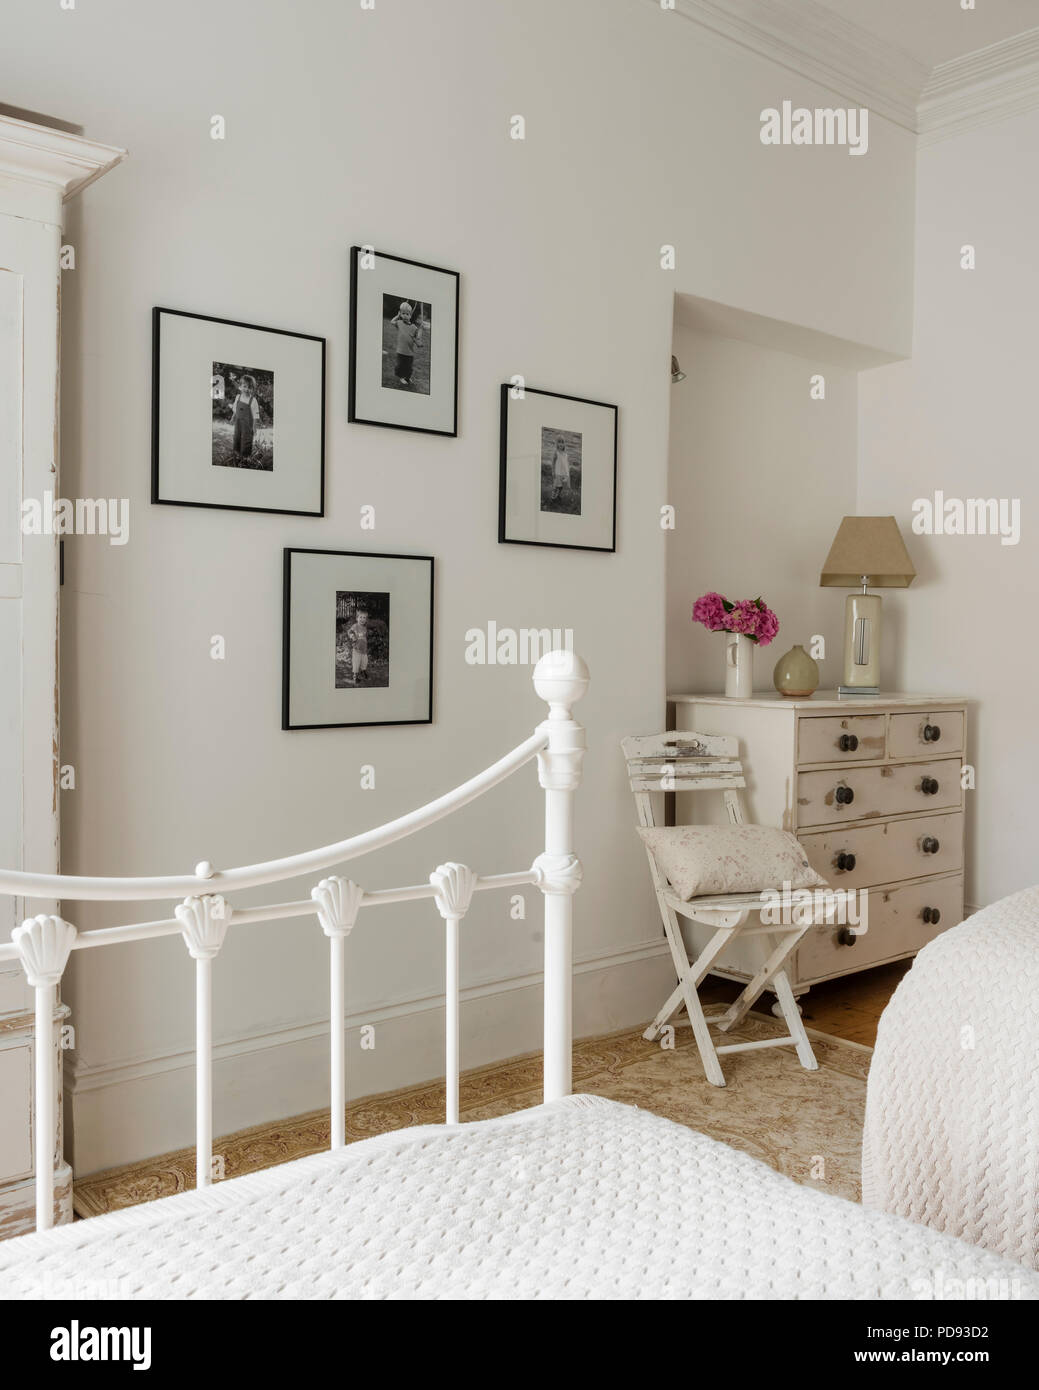 Black and white family photographs adorn the wall of a guest bedroom with old chest of drawers and quilt bed throws - Stock Image